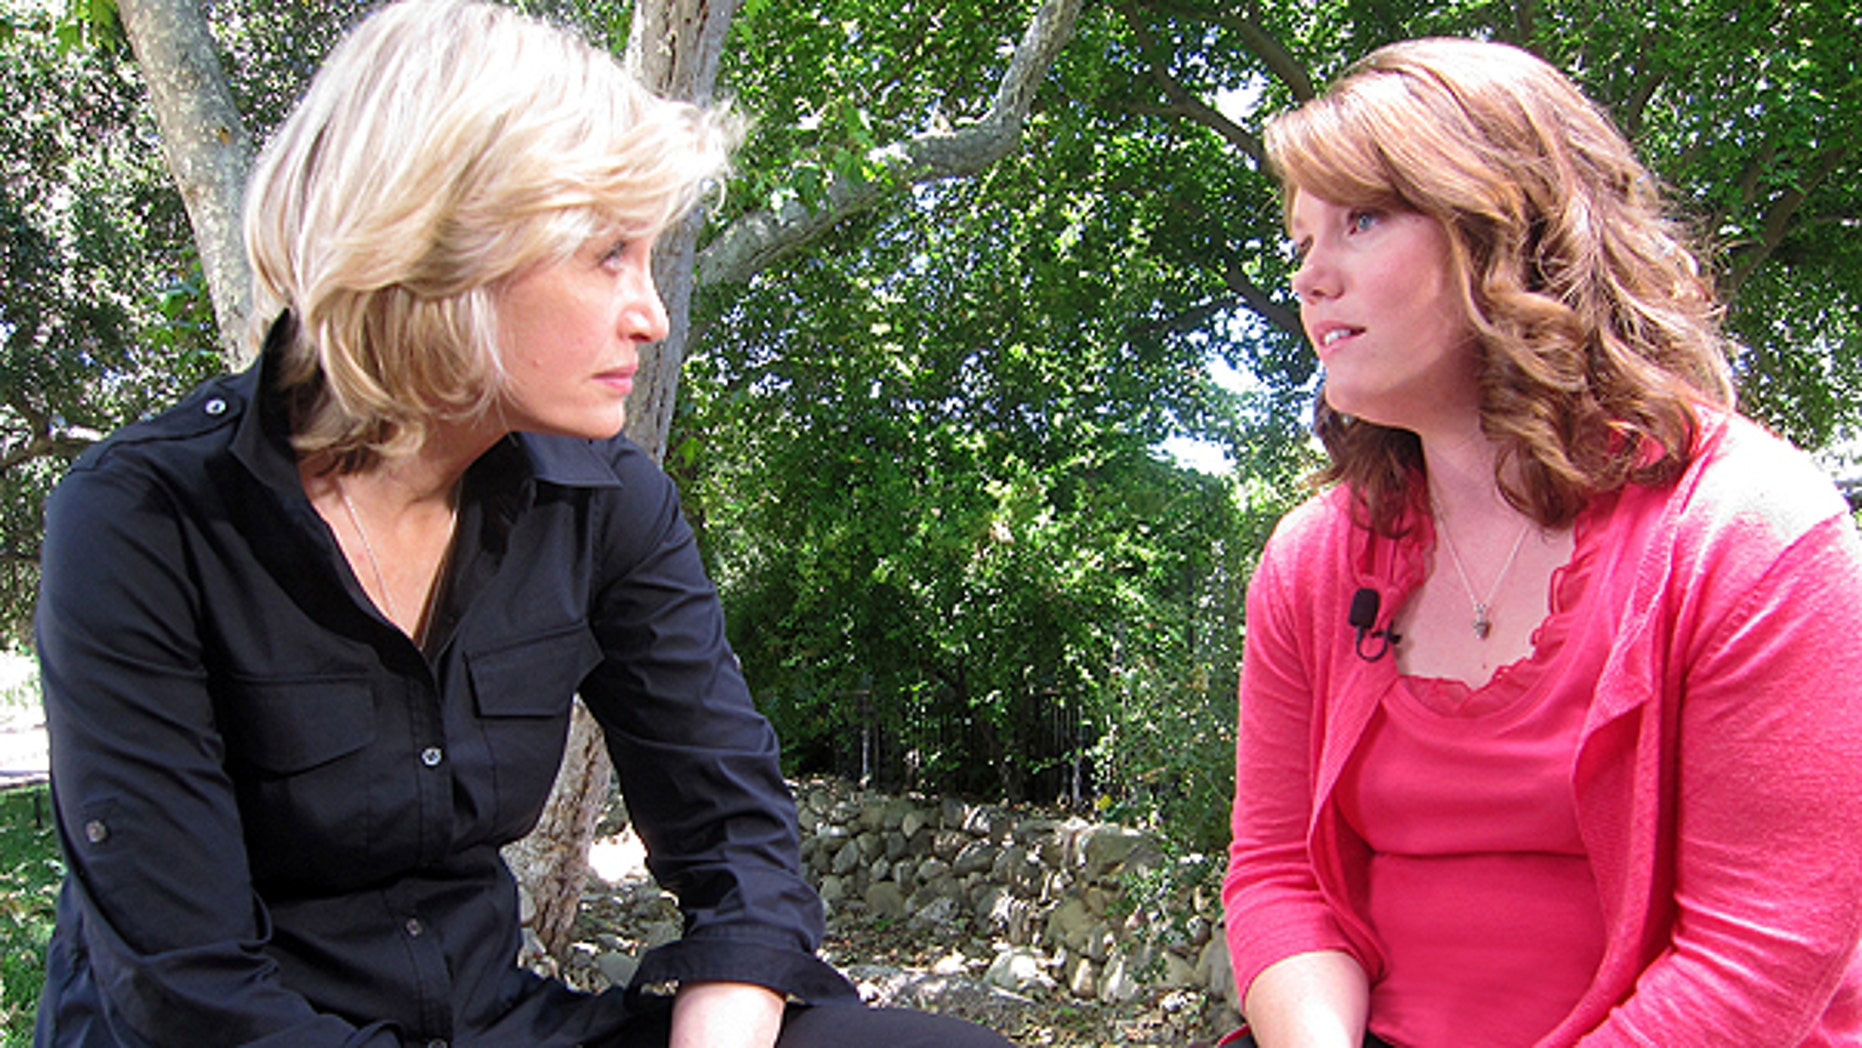 July 1, 2011: ABC News' Diane Sawyer, left, speaks with Jaycee Dugard in Ojai, Calif., during her first interview since being kidnapped near her California home in 1991, when she was 11.